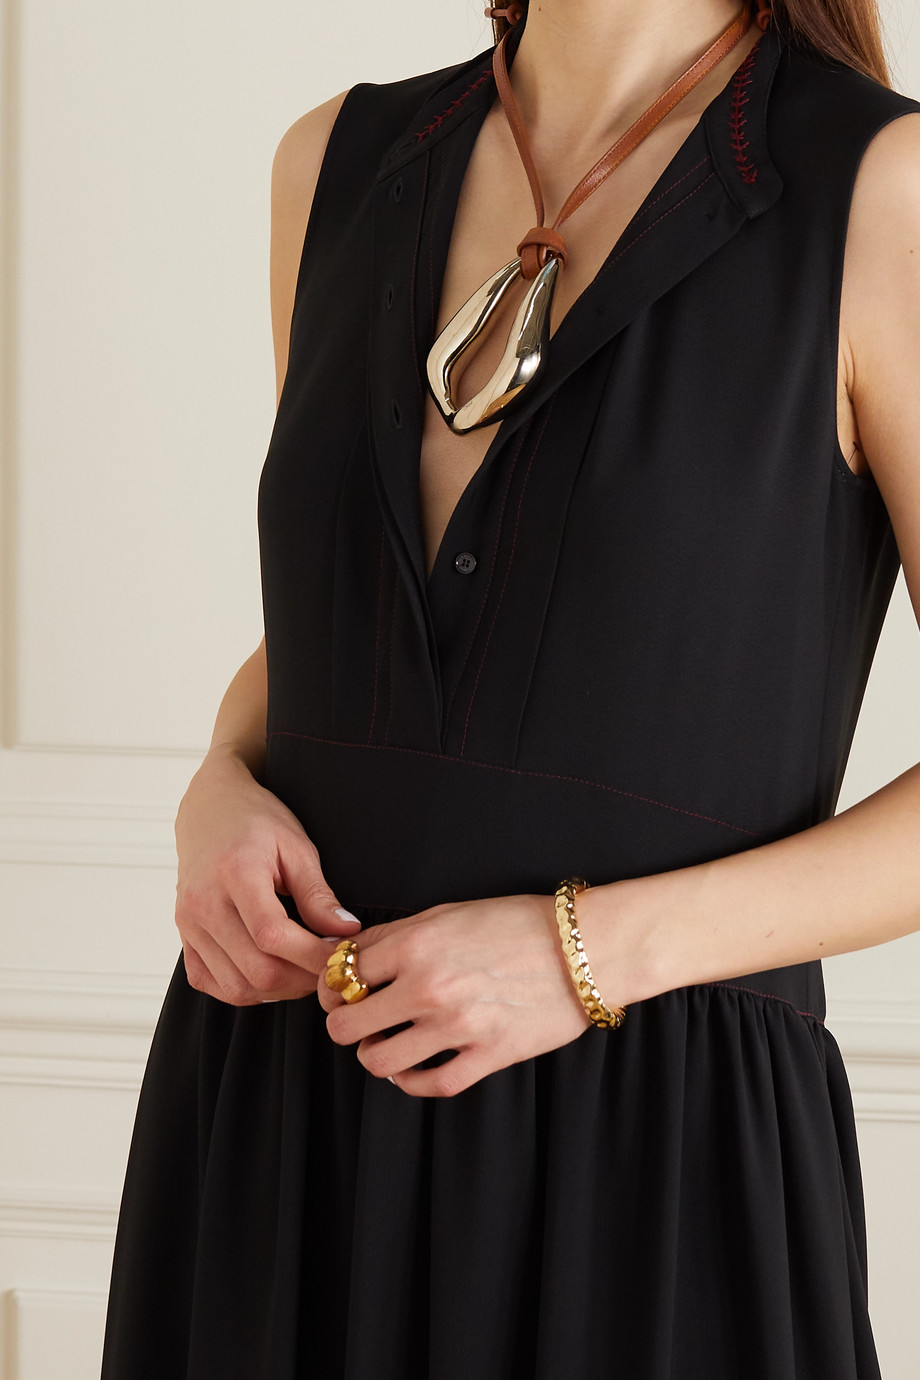 Chloé Trudie Kiss oversized gold-tone and leather necklace